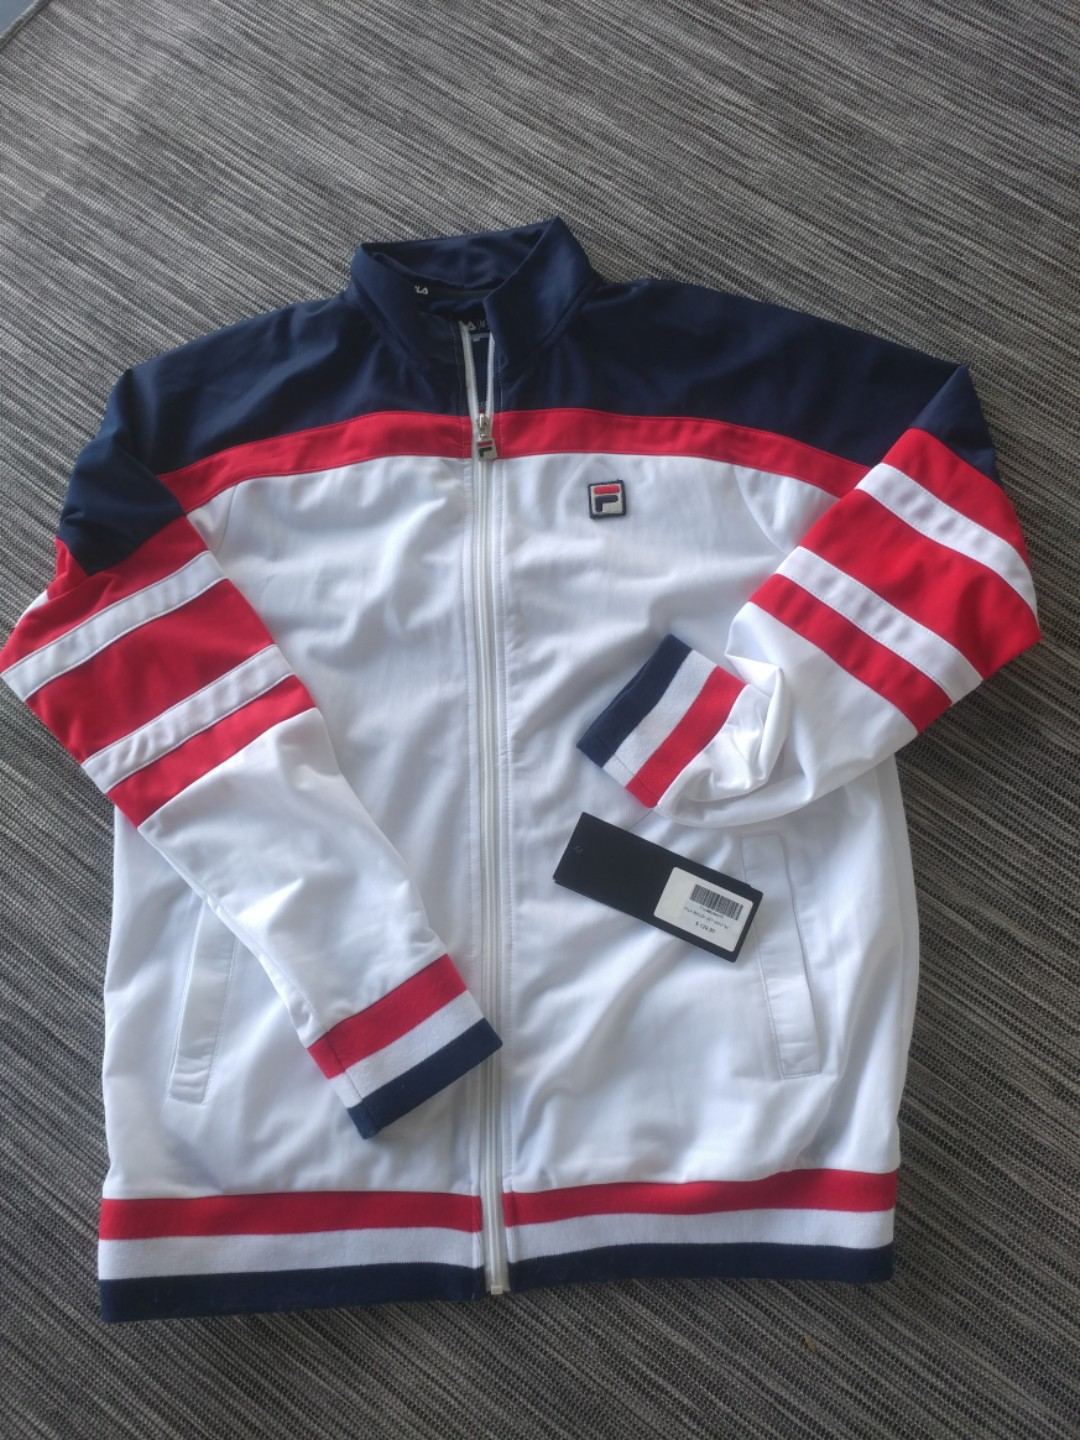 1ca156df1511 Fila track jacket, Sports, Sports Apparel on Carousell